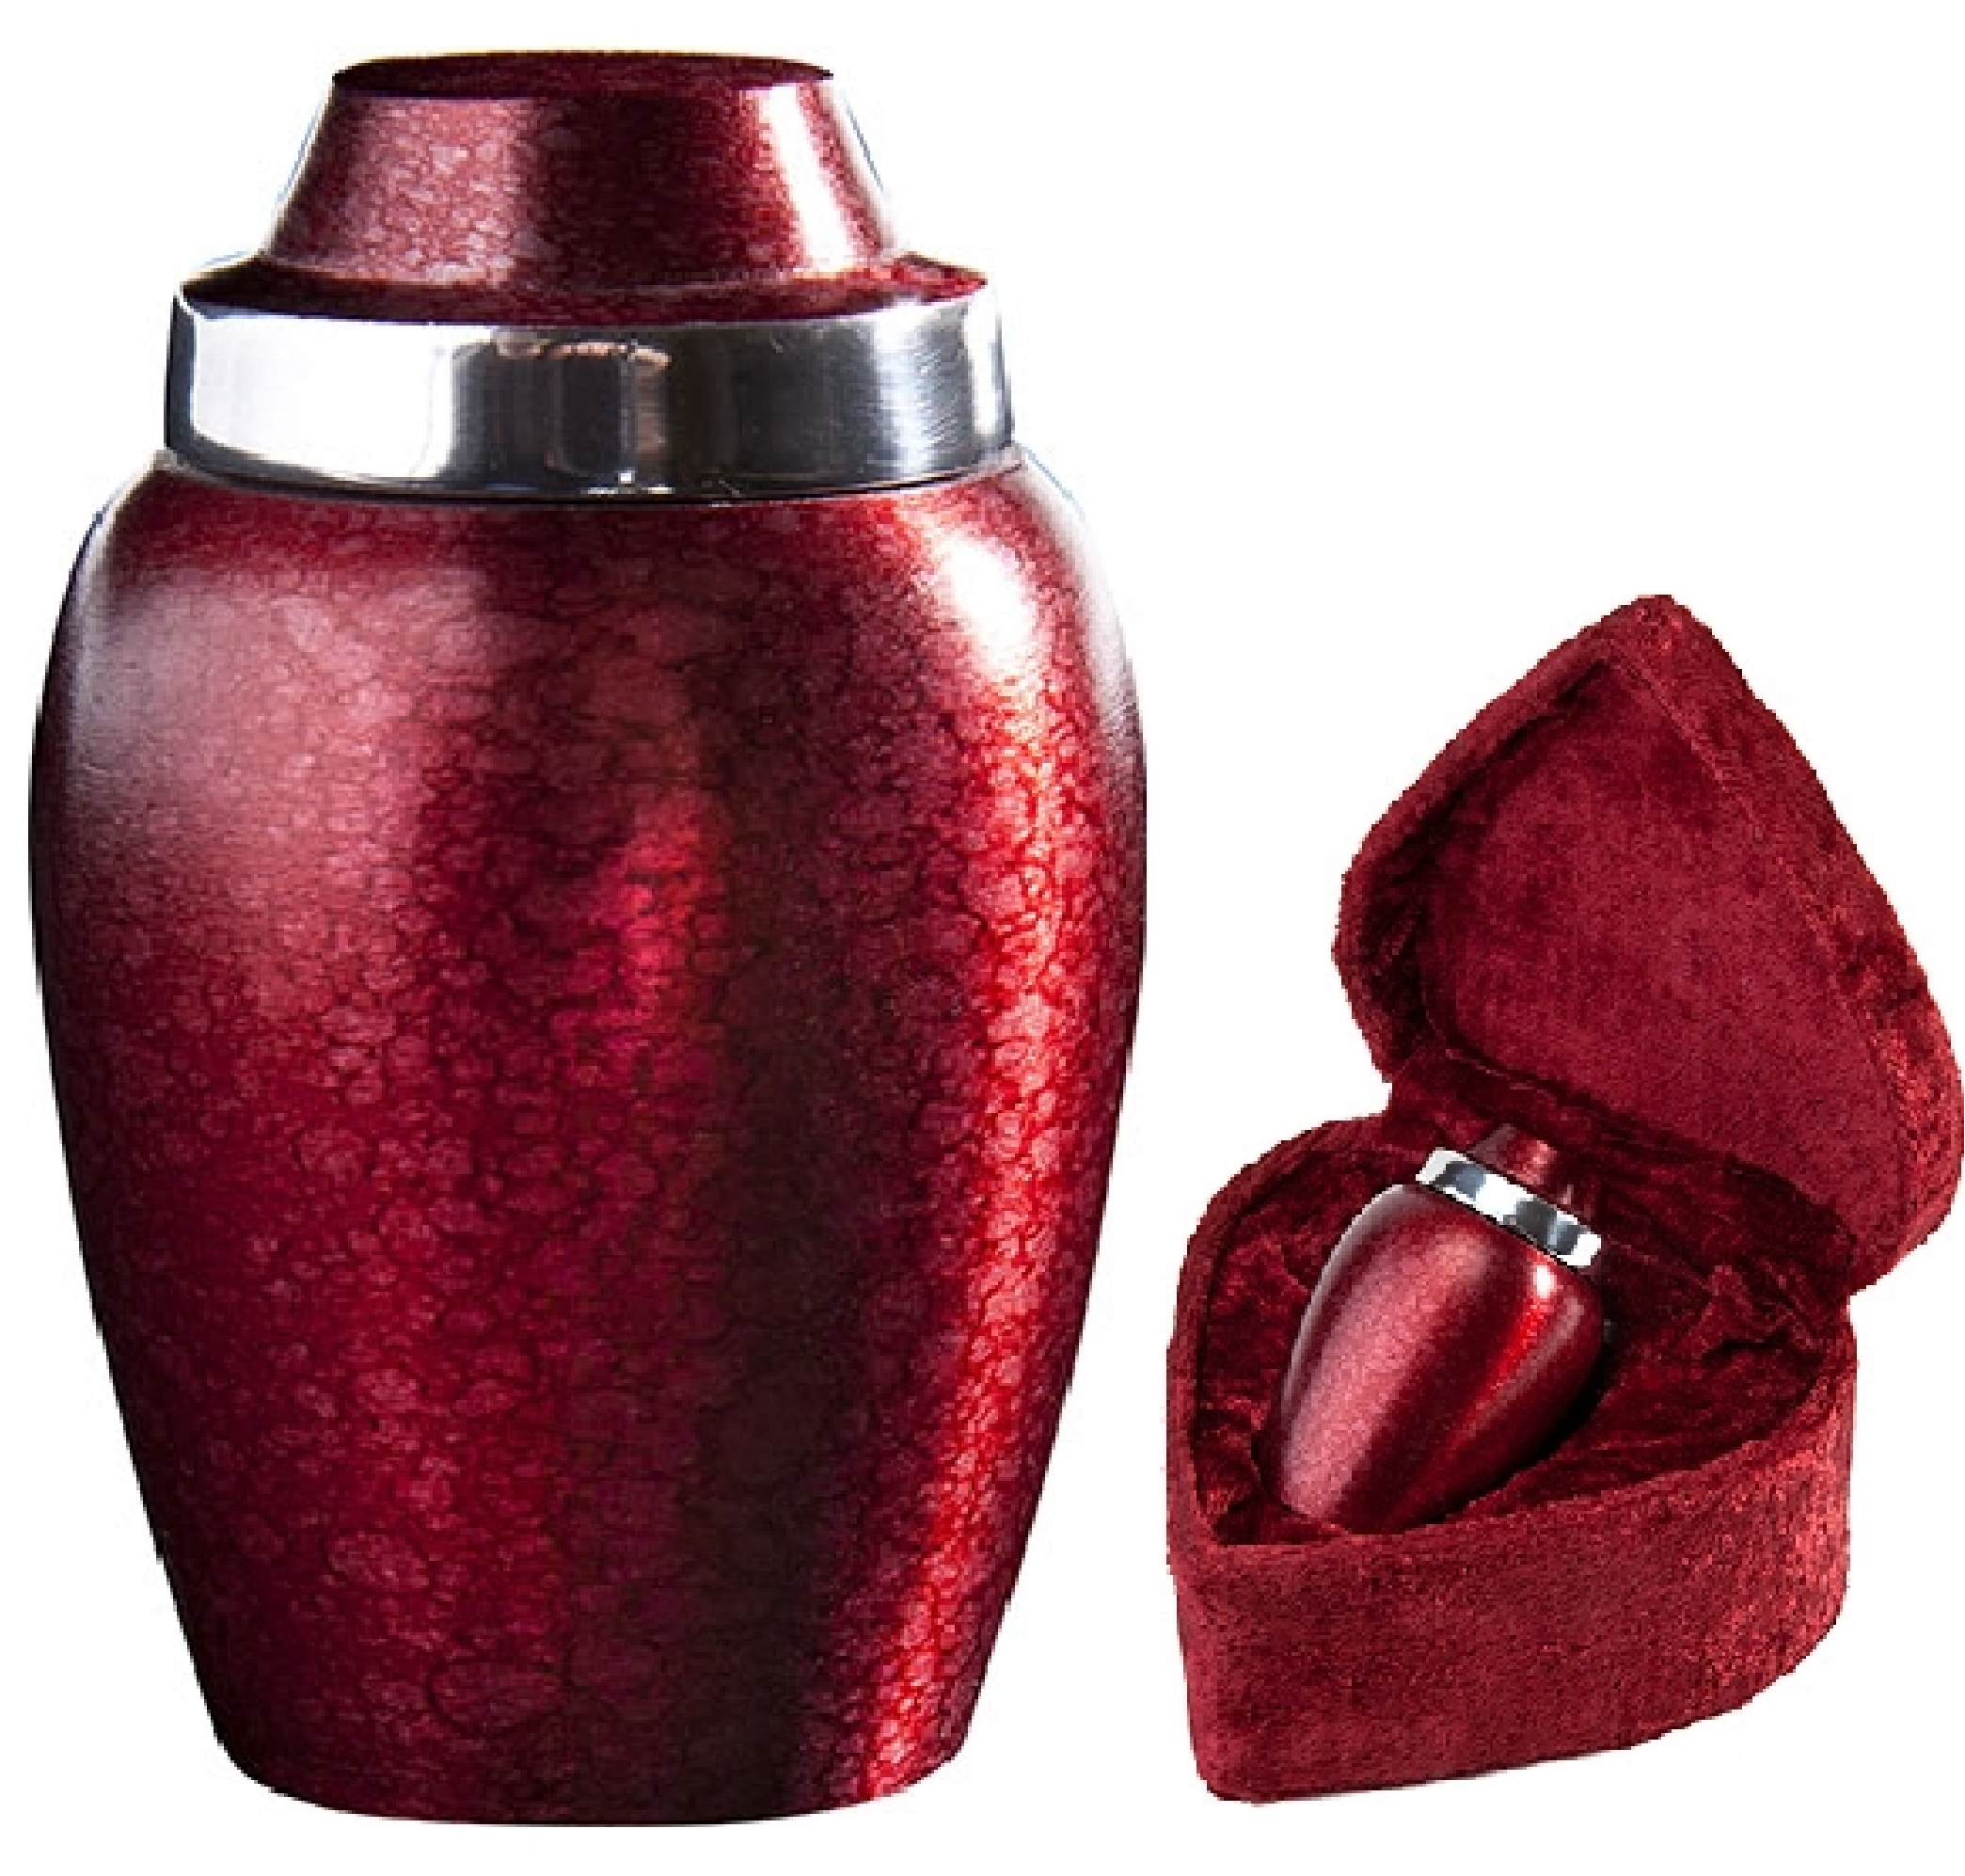 Alloy Burgundy Plum Urn $29-$78